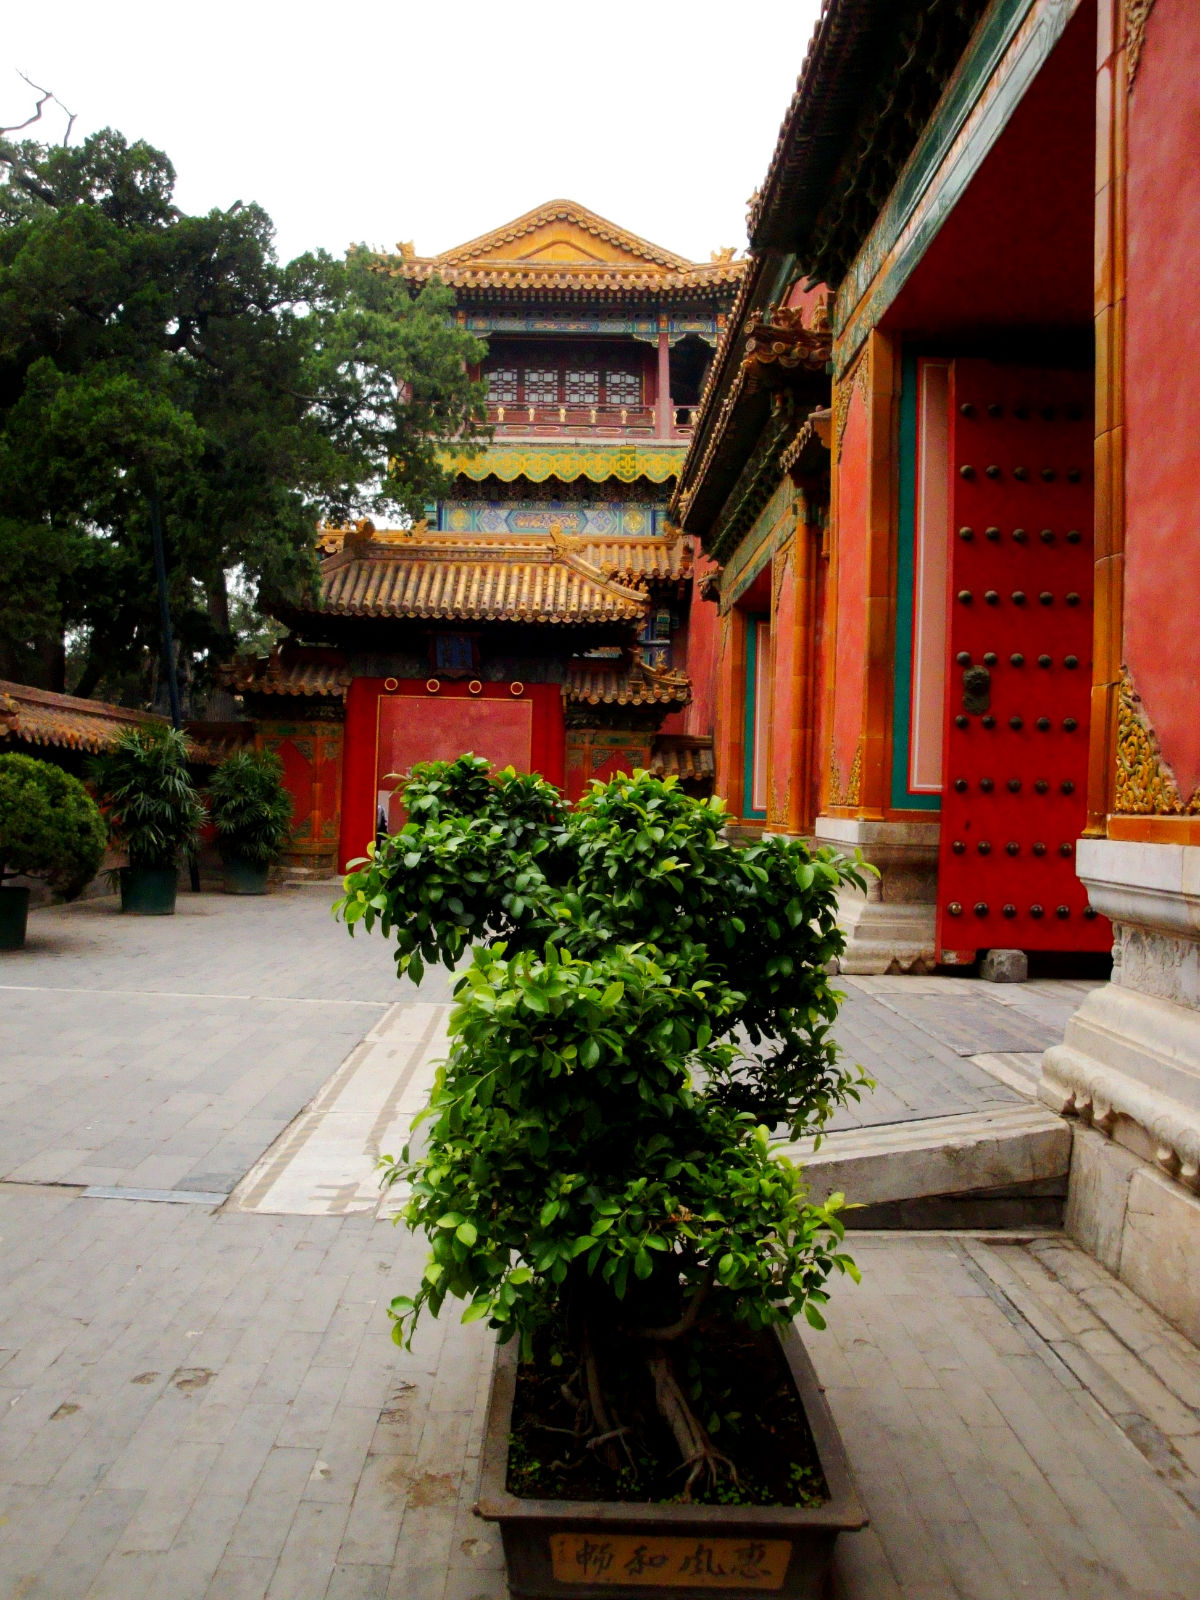 Architecture chinoise le blog de g rard for Architecture chinoise